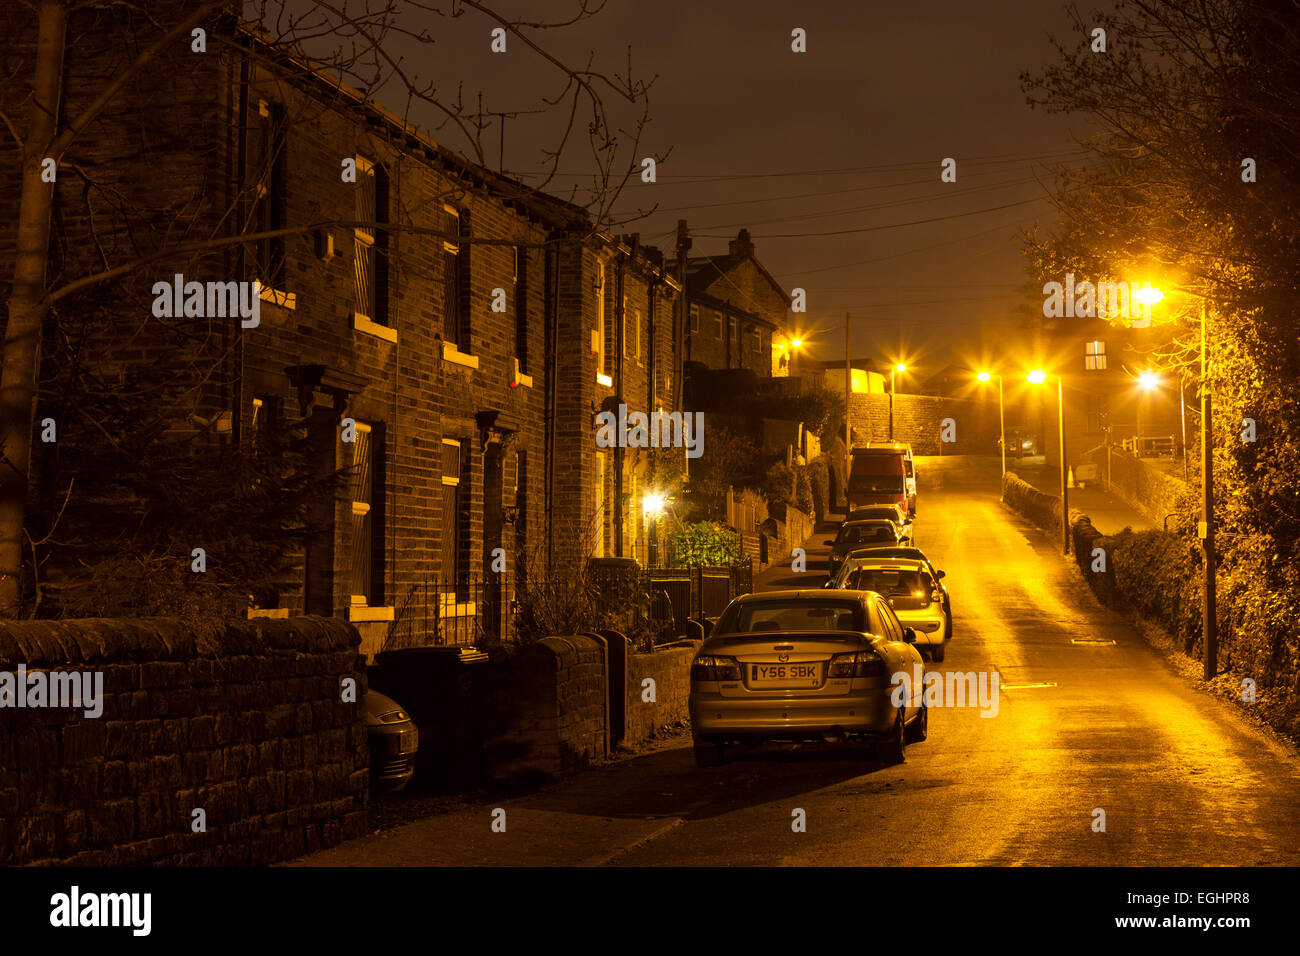 street-with-parked-cars-at-night-sowerby-bridge-west-yorkshire-EGHPR8.jpg